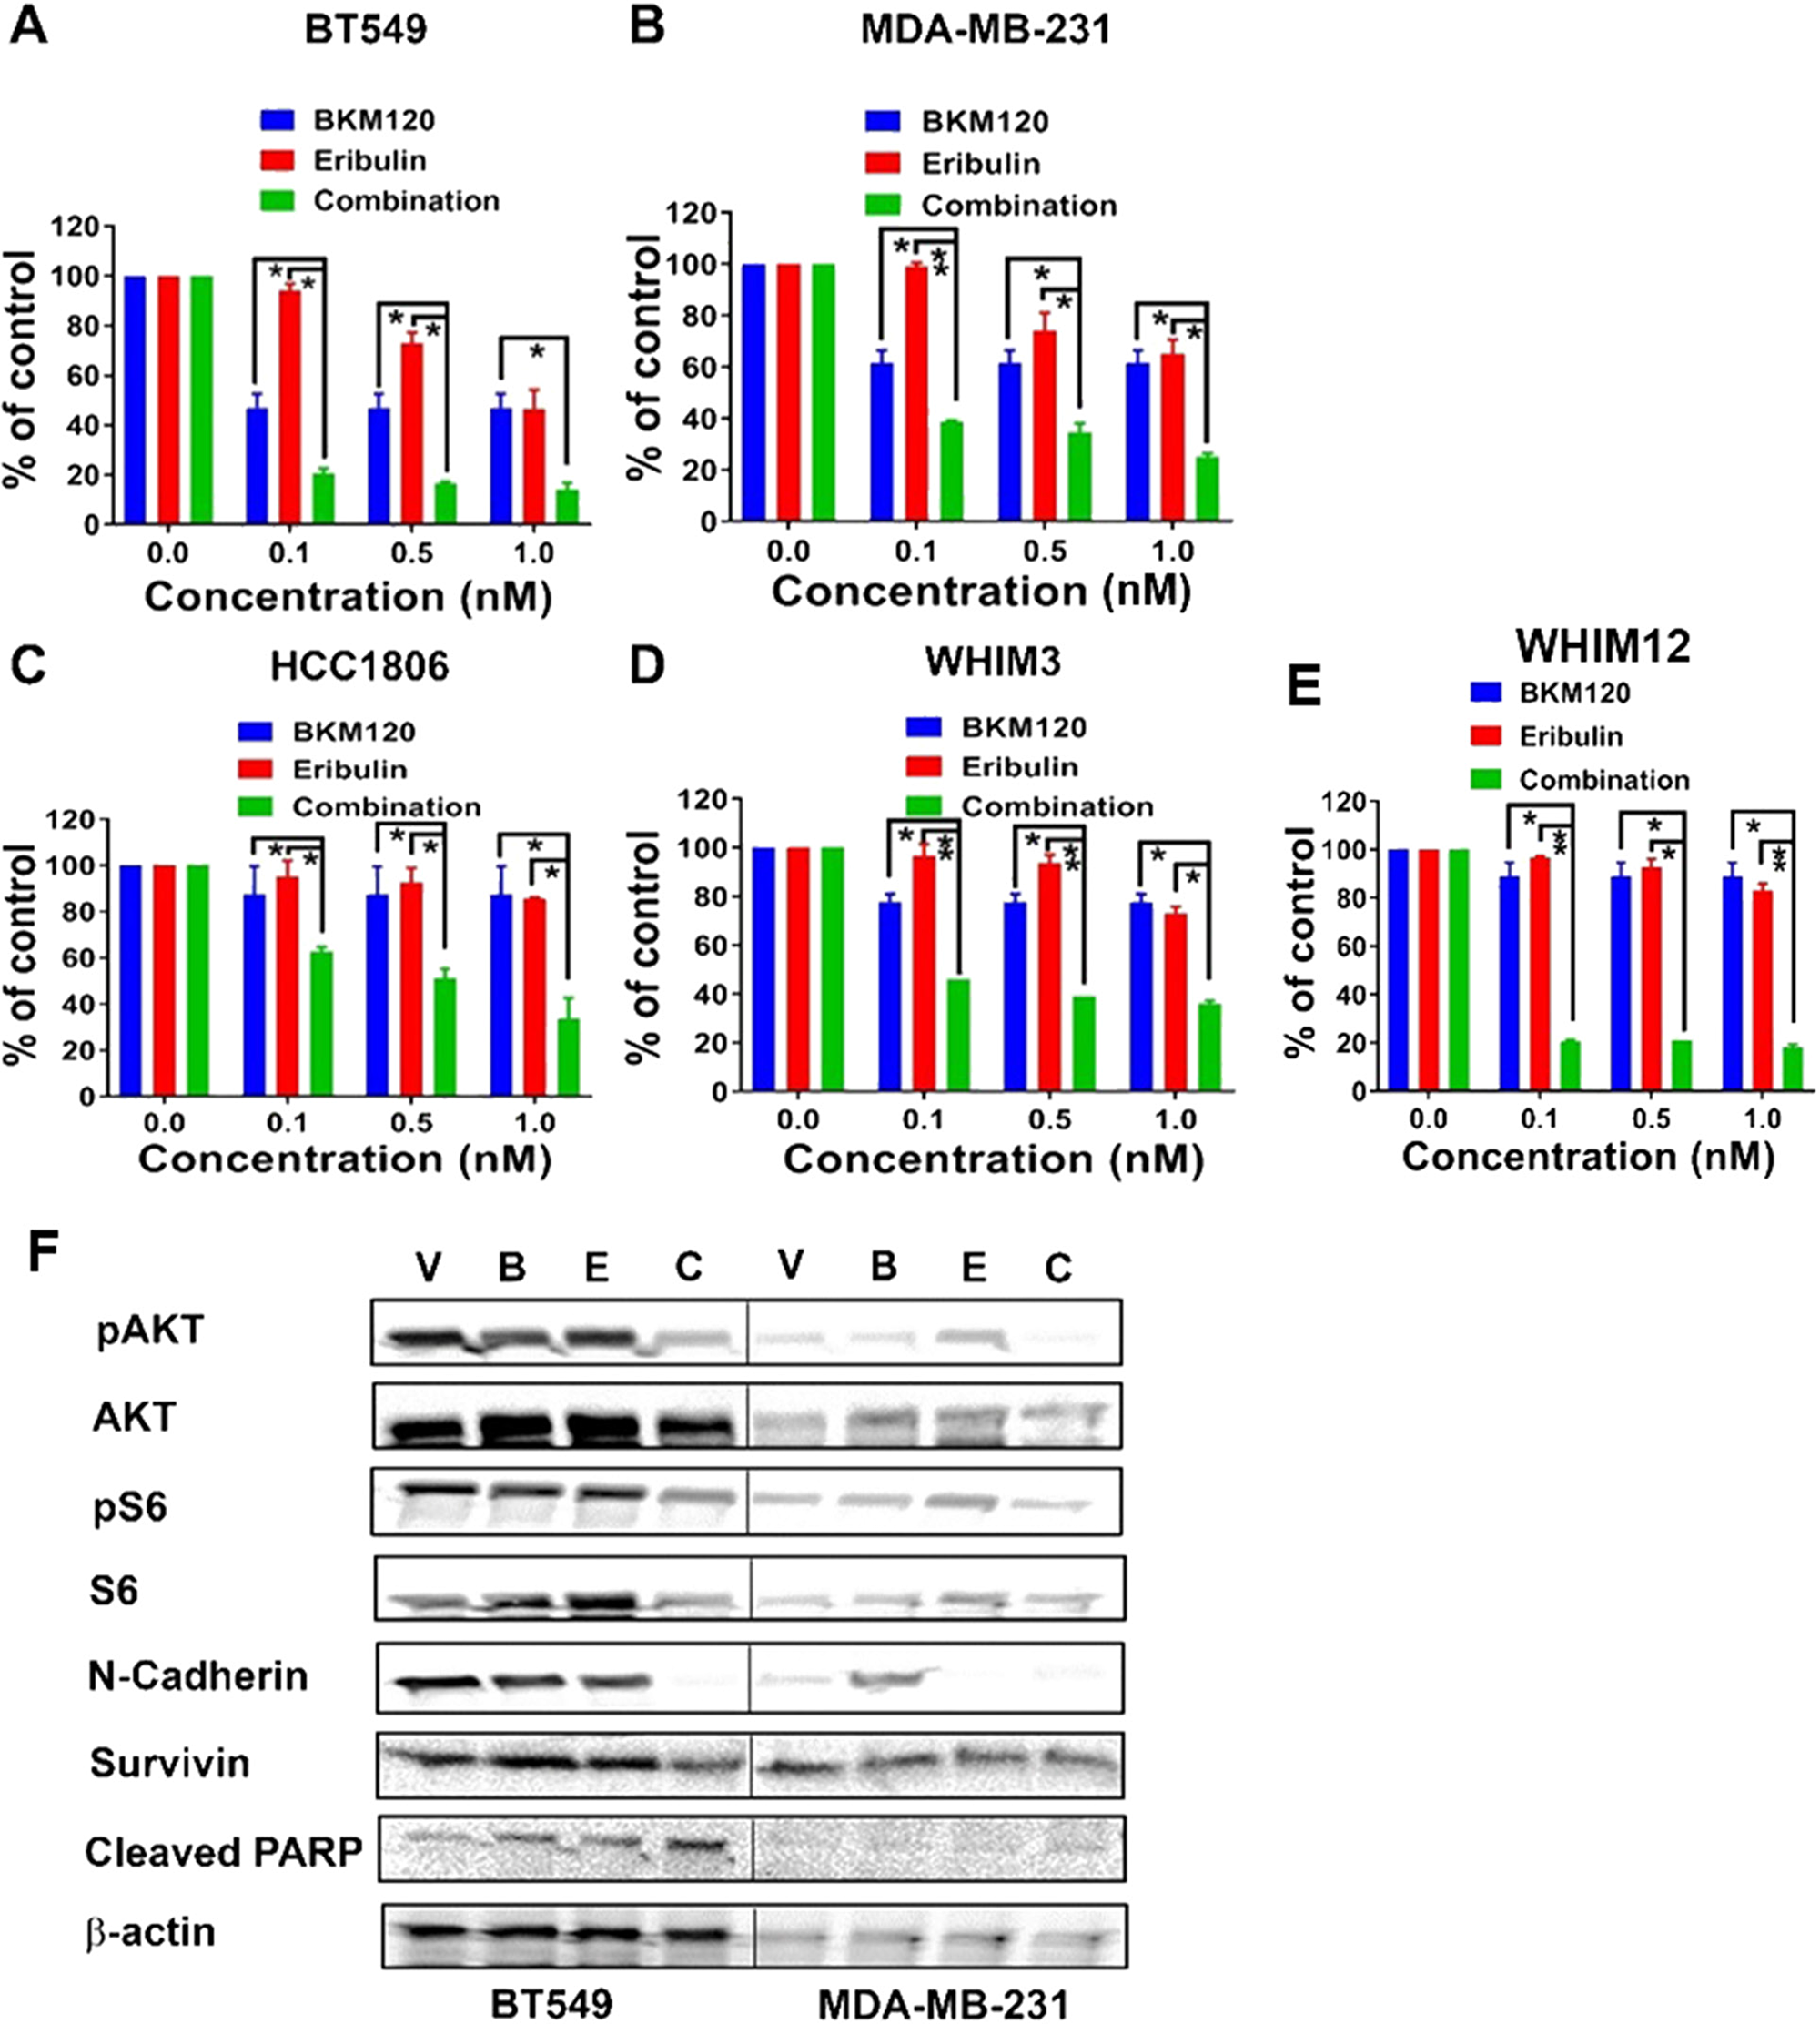 Eribulin in combination with BKM120 induces synergistic anti-tumor effect and target inhibition in TNBC cells in vitro.